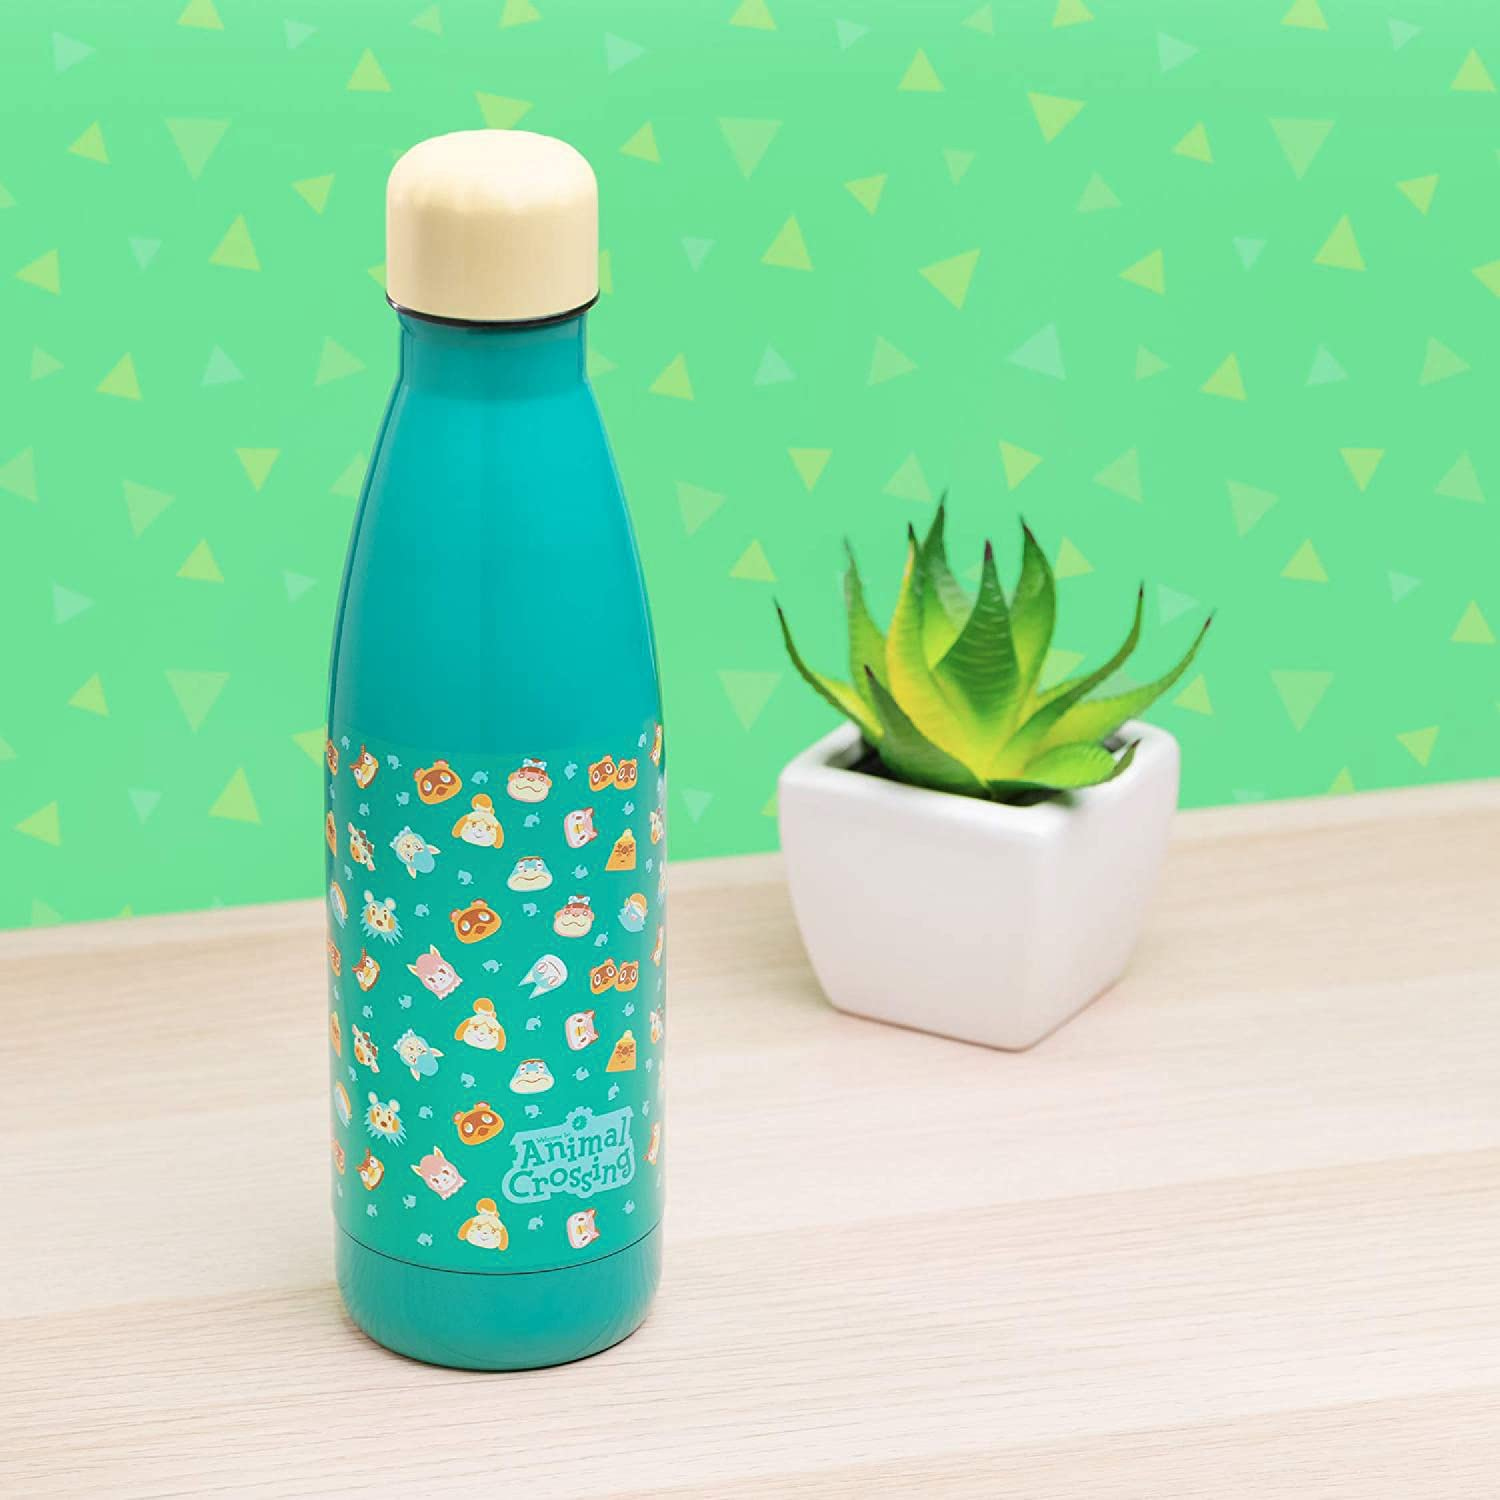 Paladone Animal Crossing Water Bottle Officially Licensed Merchandise